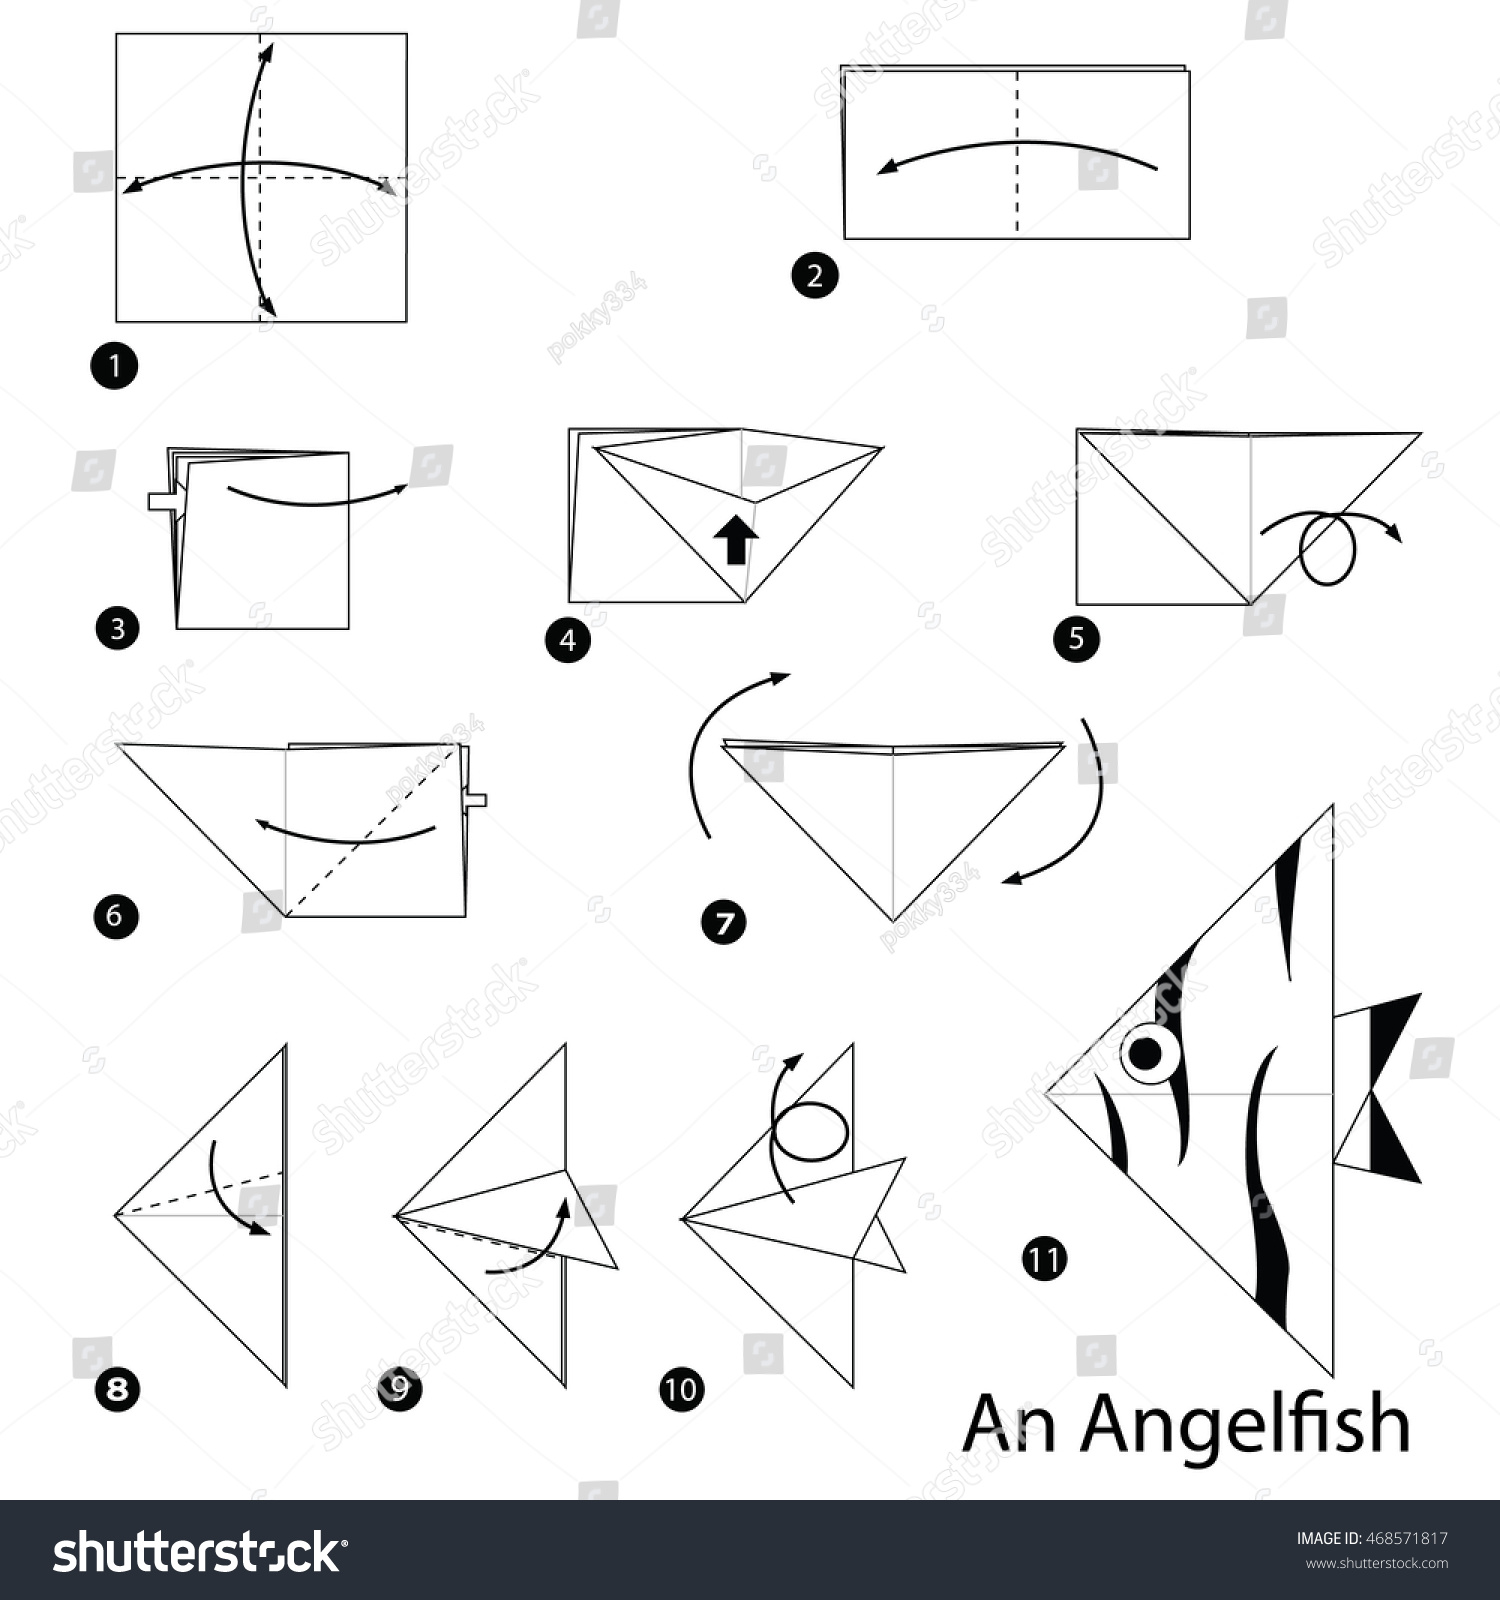 origami angel step by diagram 95 f150 ignition wiring instructions how make stock vector royalty free to an angelfish